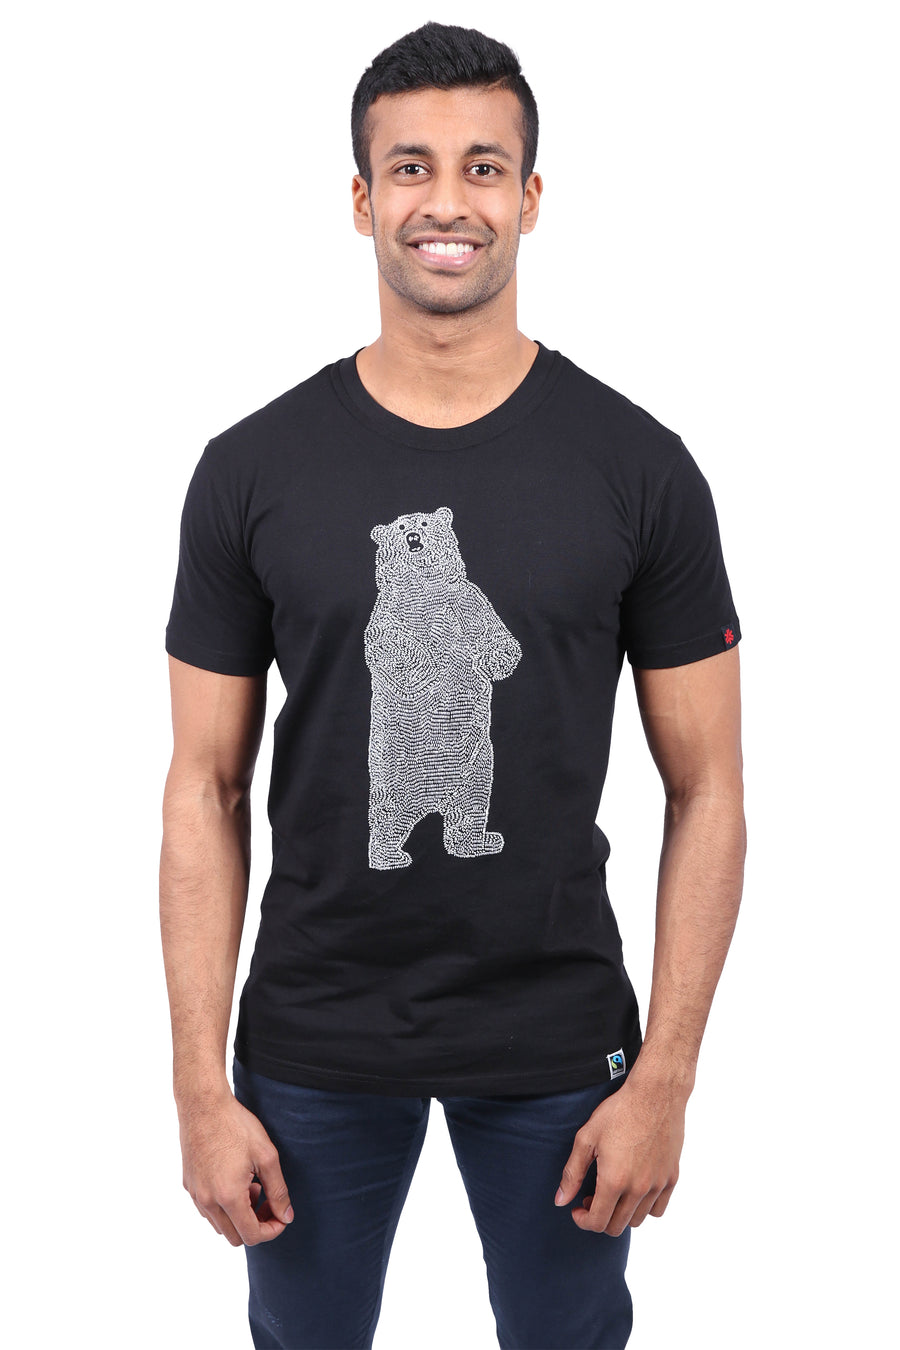 Bear Black T-shirt Unisex Organic Fairtrade